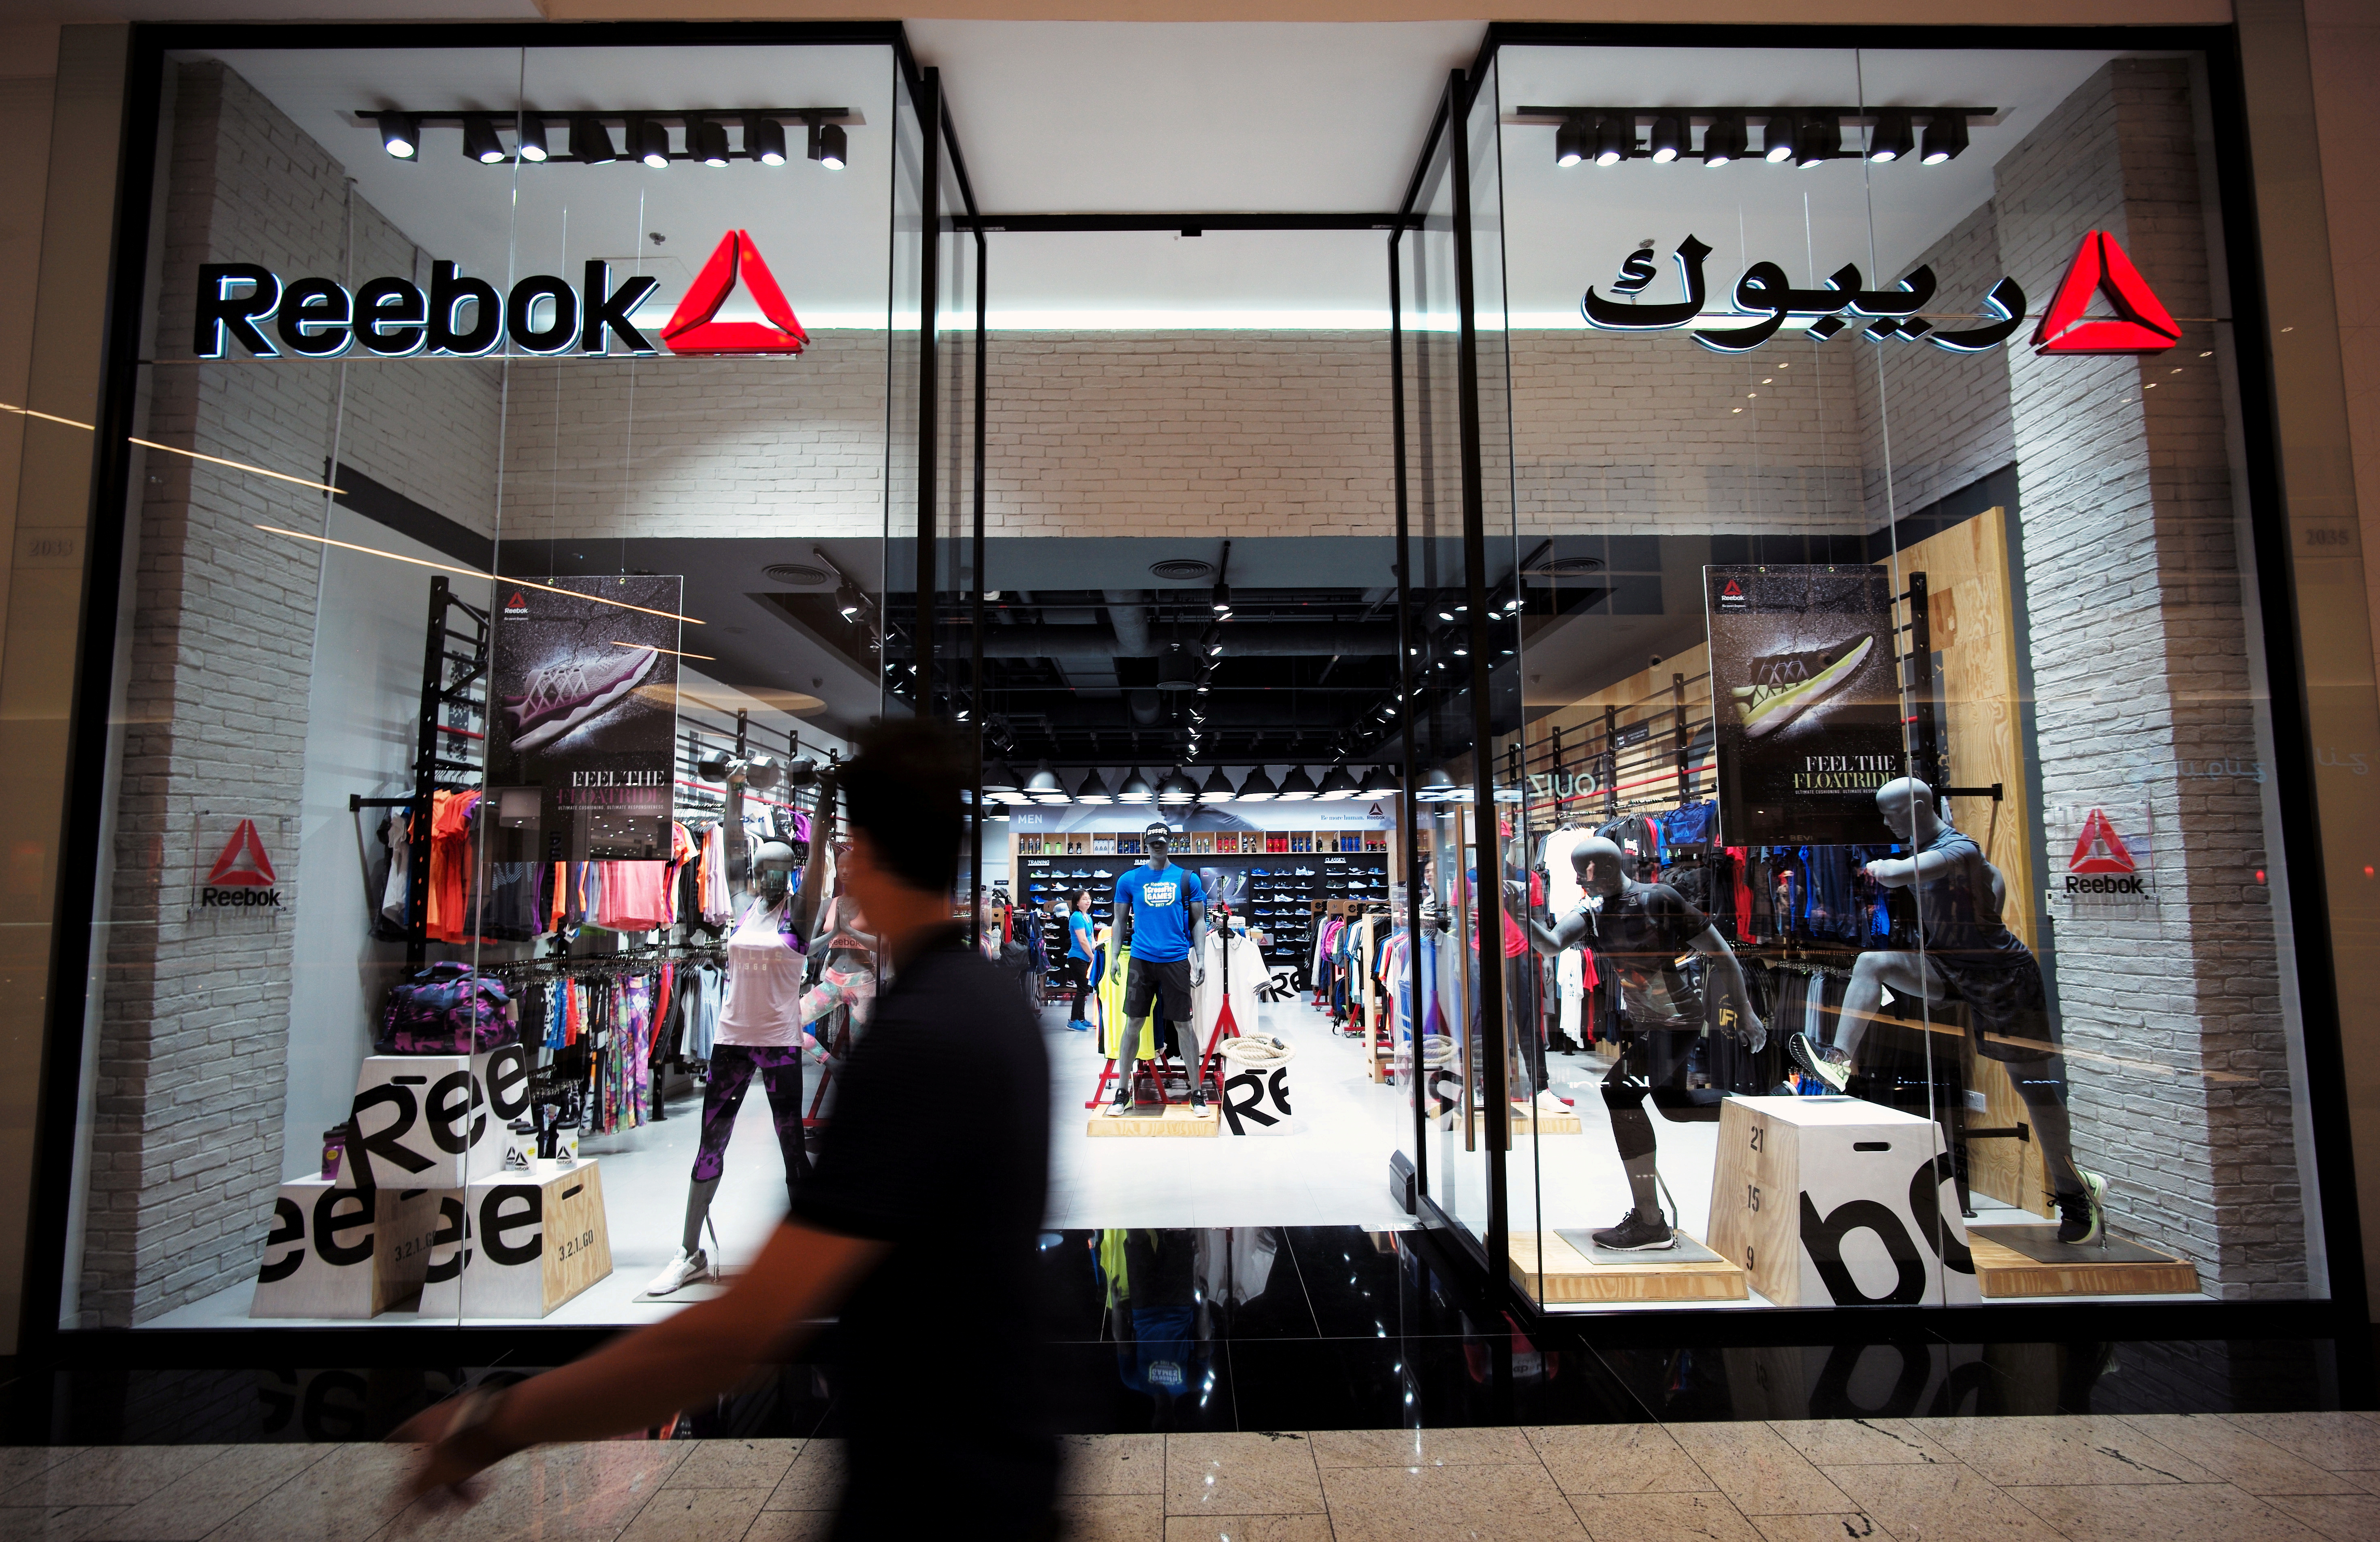 A man walks in front of the Reebok store at Bahrain City Center in Manama, Bahrain September 17, 2017. REUTERS/Hamad I Mohammed/File Photo